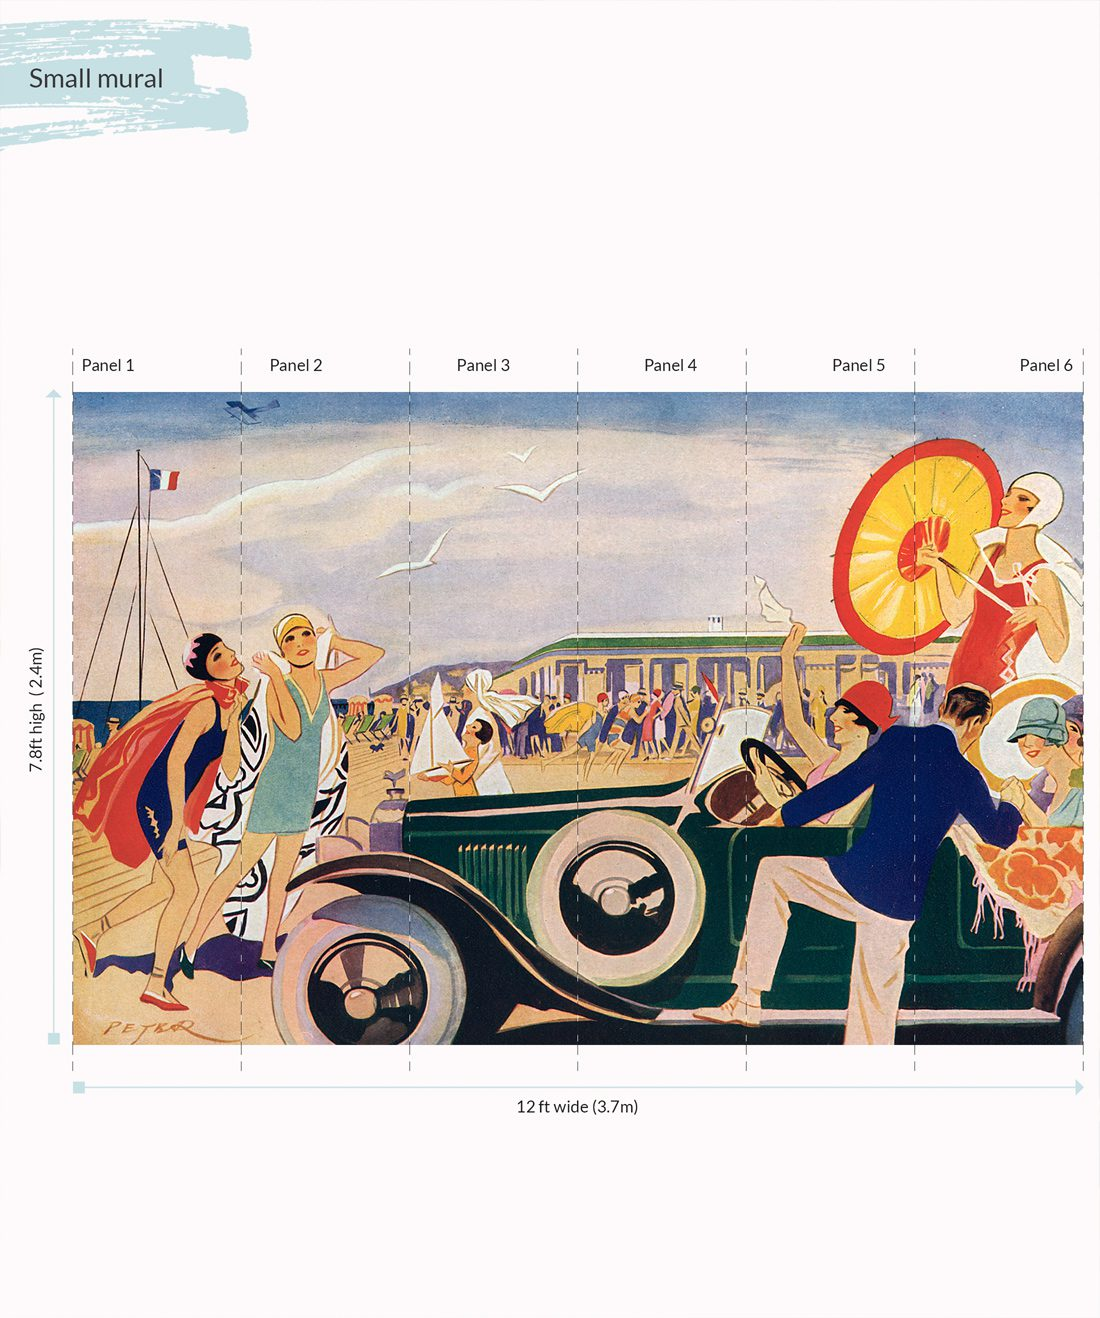 French Riviera Mural - Small